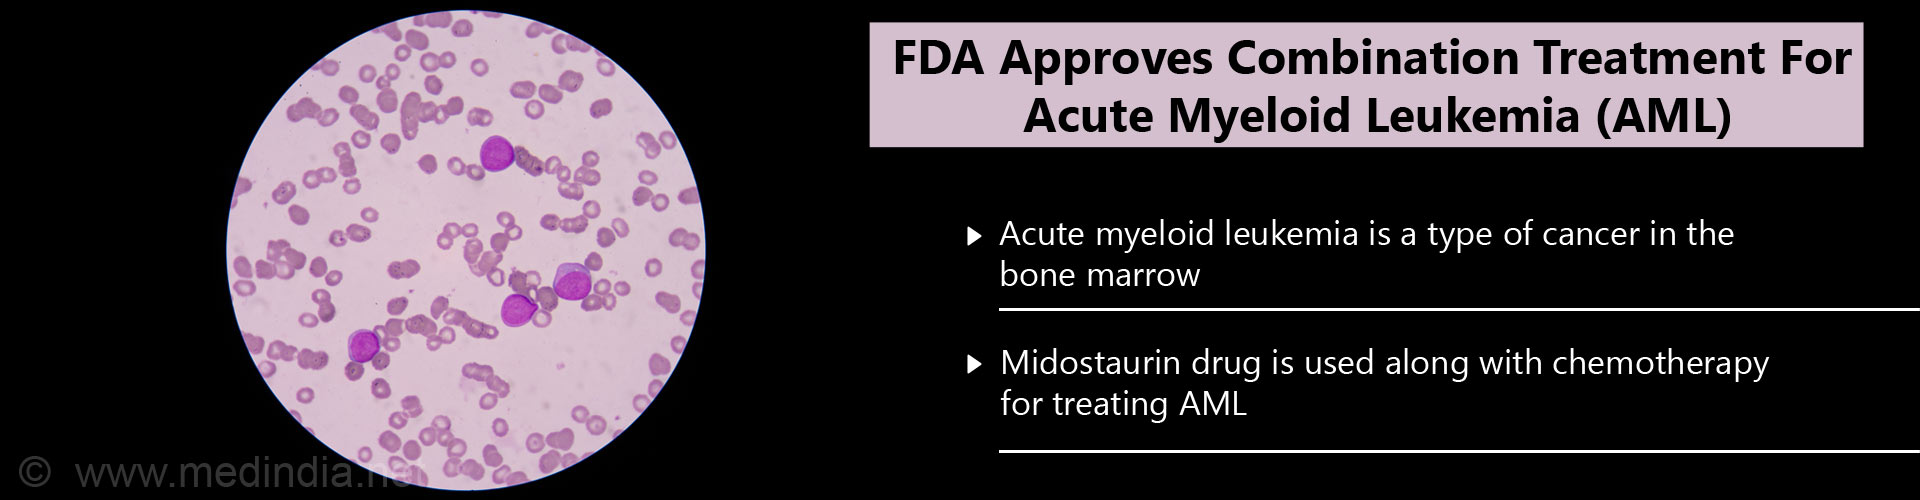 FDA approves combination treatment for acute myeloid leukemia (AML) - Acute myeloid leukemia (AML) is a tyoe of cancer in the bone marrow - Midostaurin drug is used along with chemotherapy for treating AML